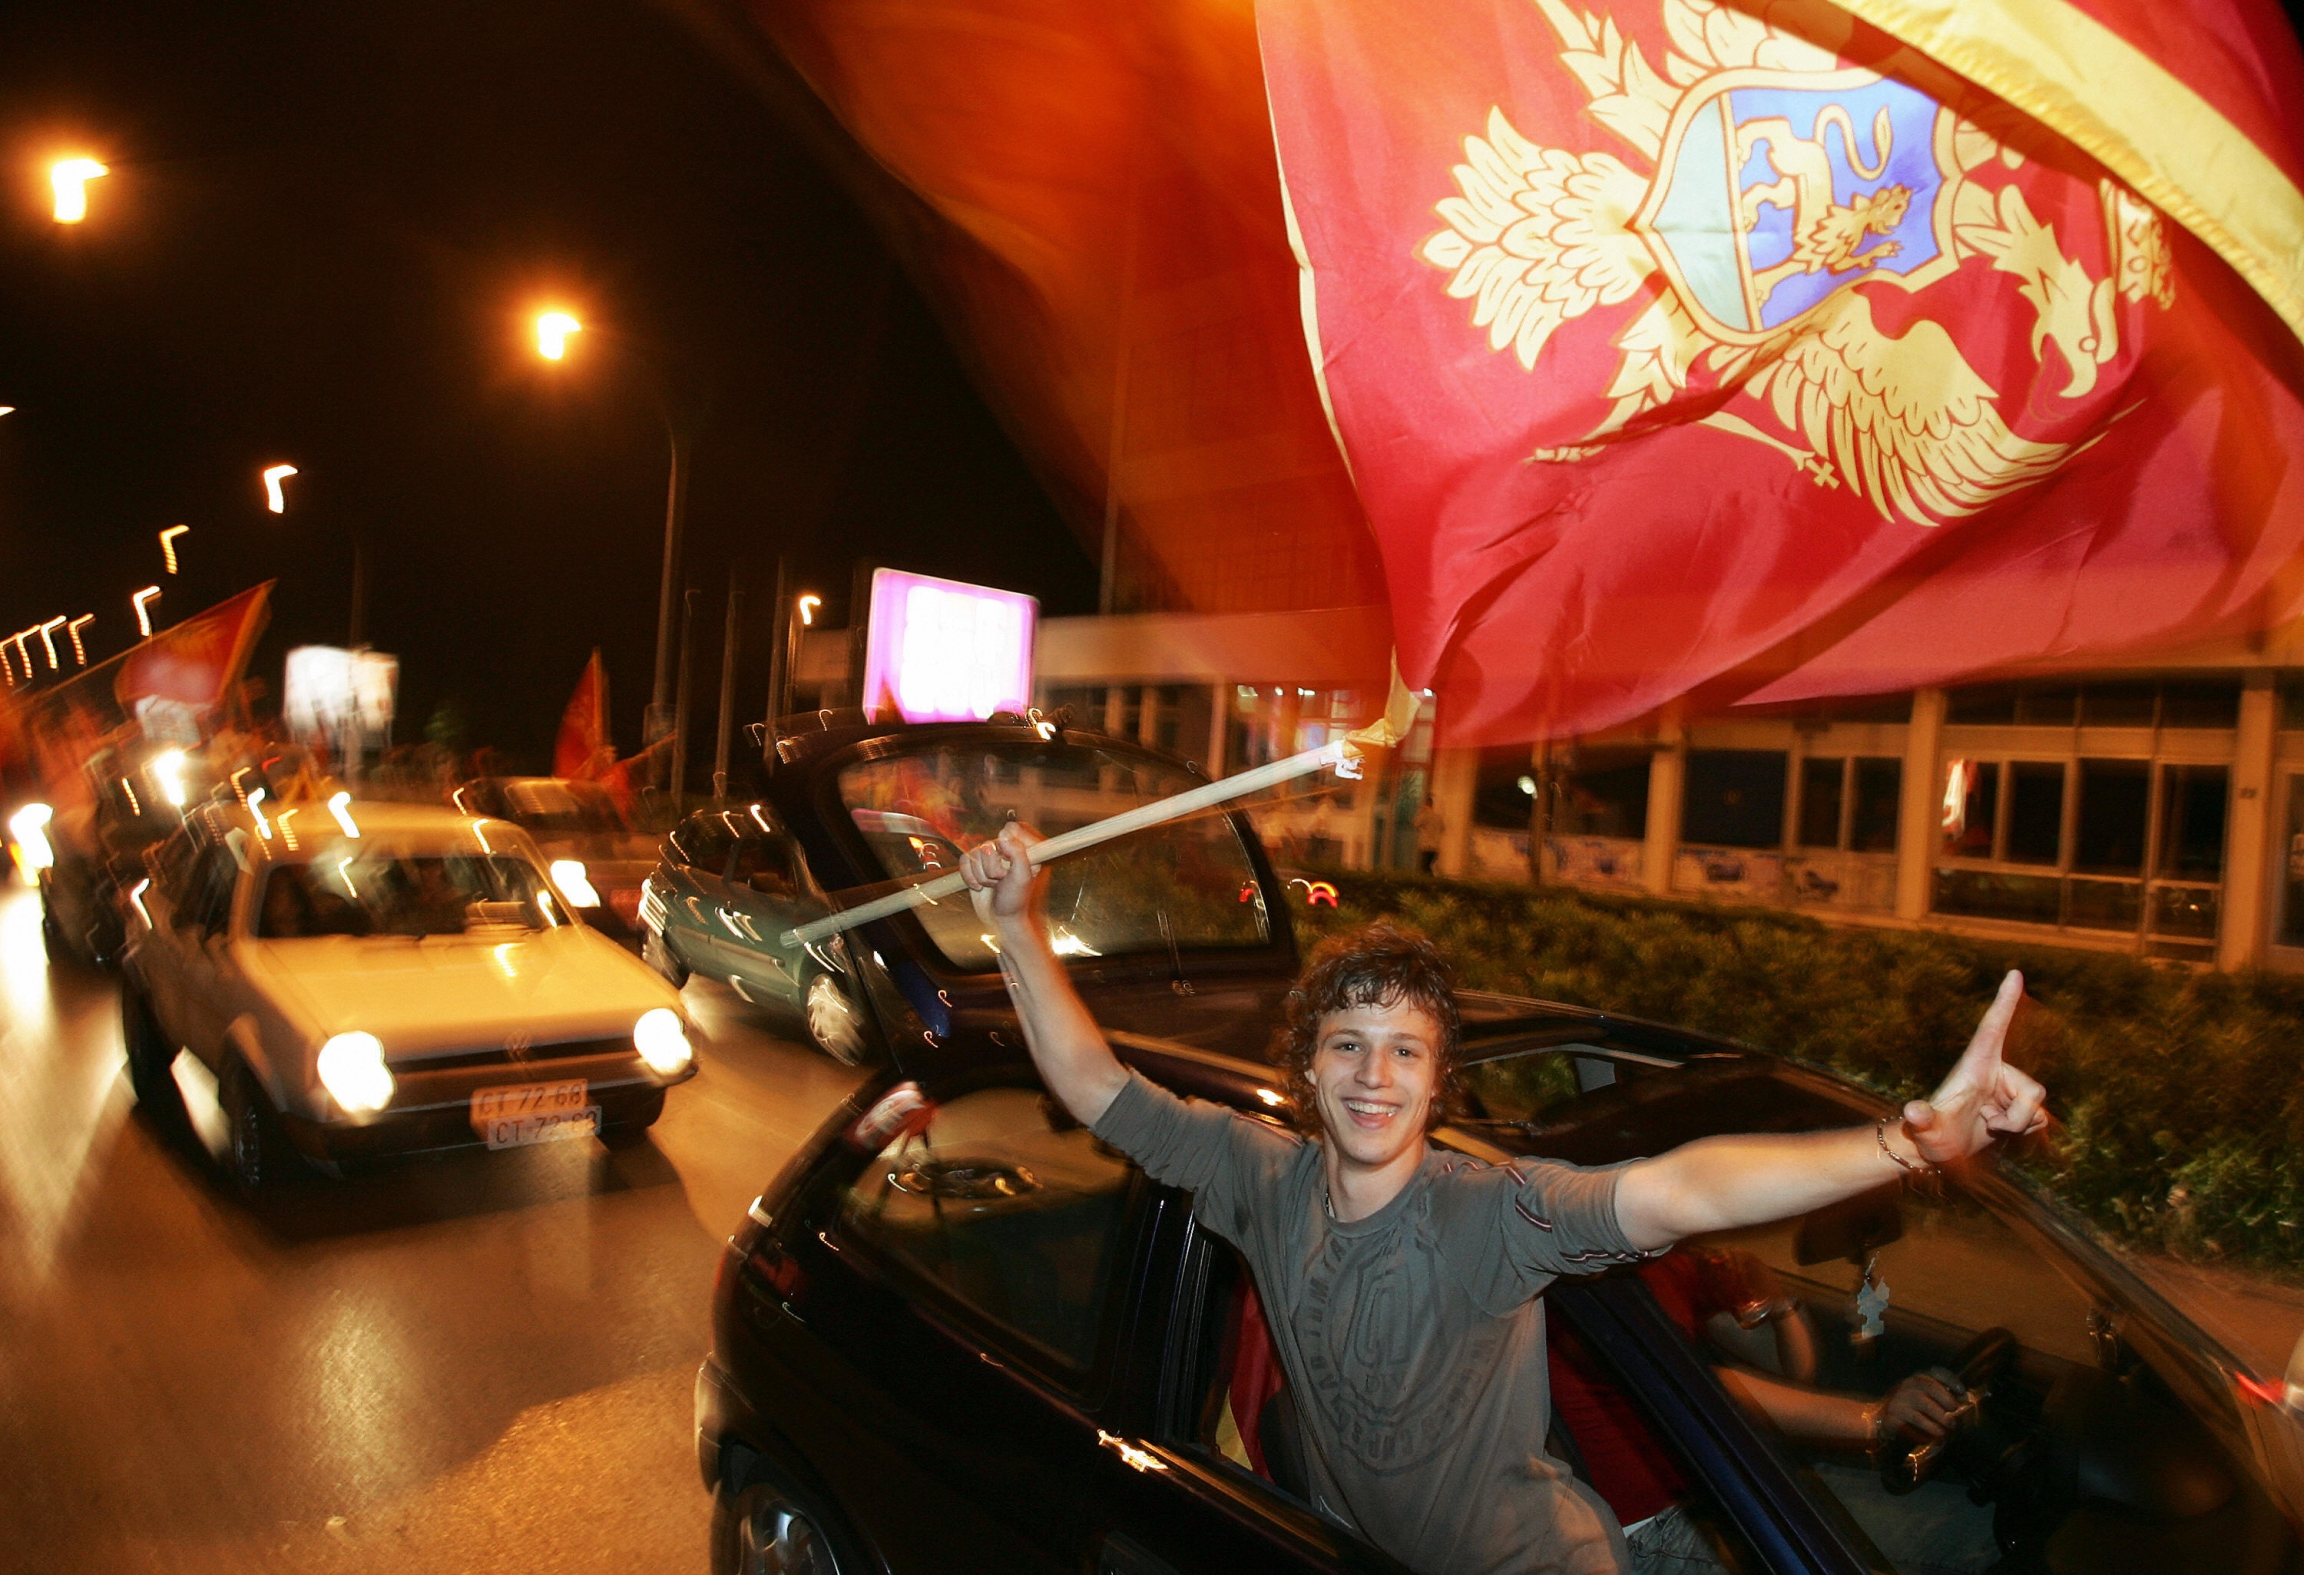 A man holds a flag and sticks his arm out of a car window, smiling and celebrating.